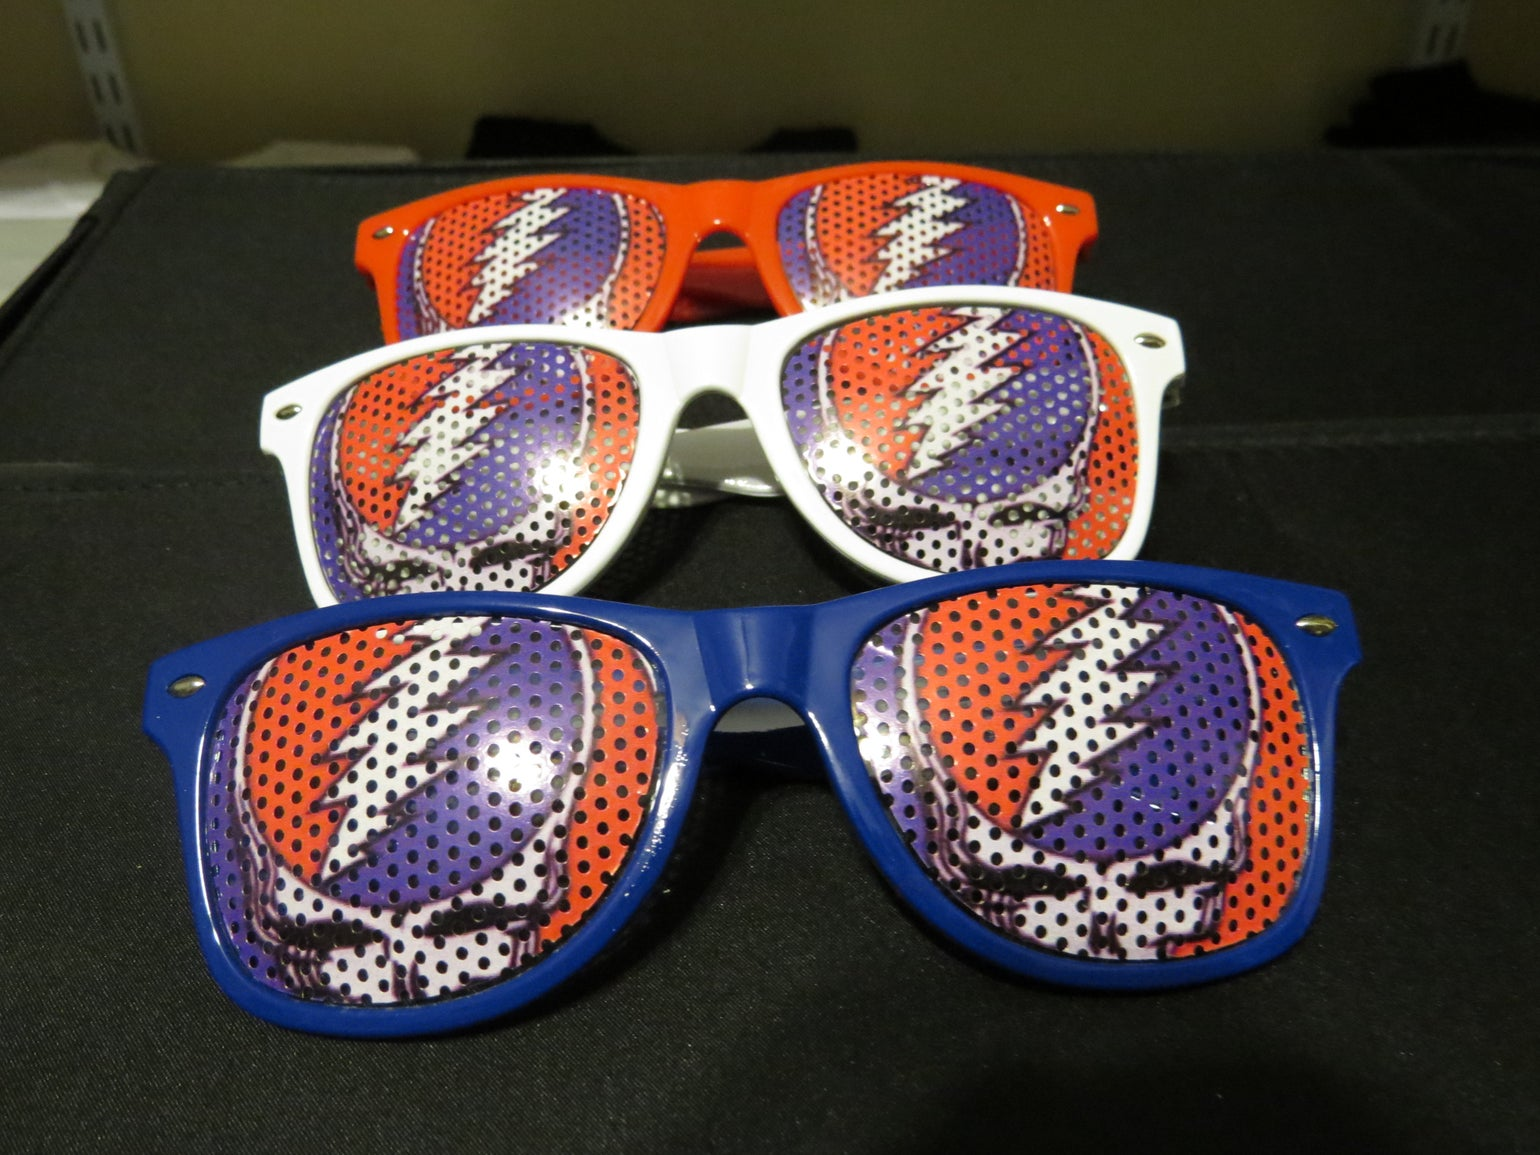 Image of Novelty glasses a.k.a night vision glasses